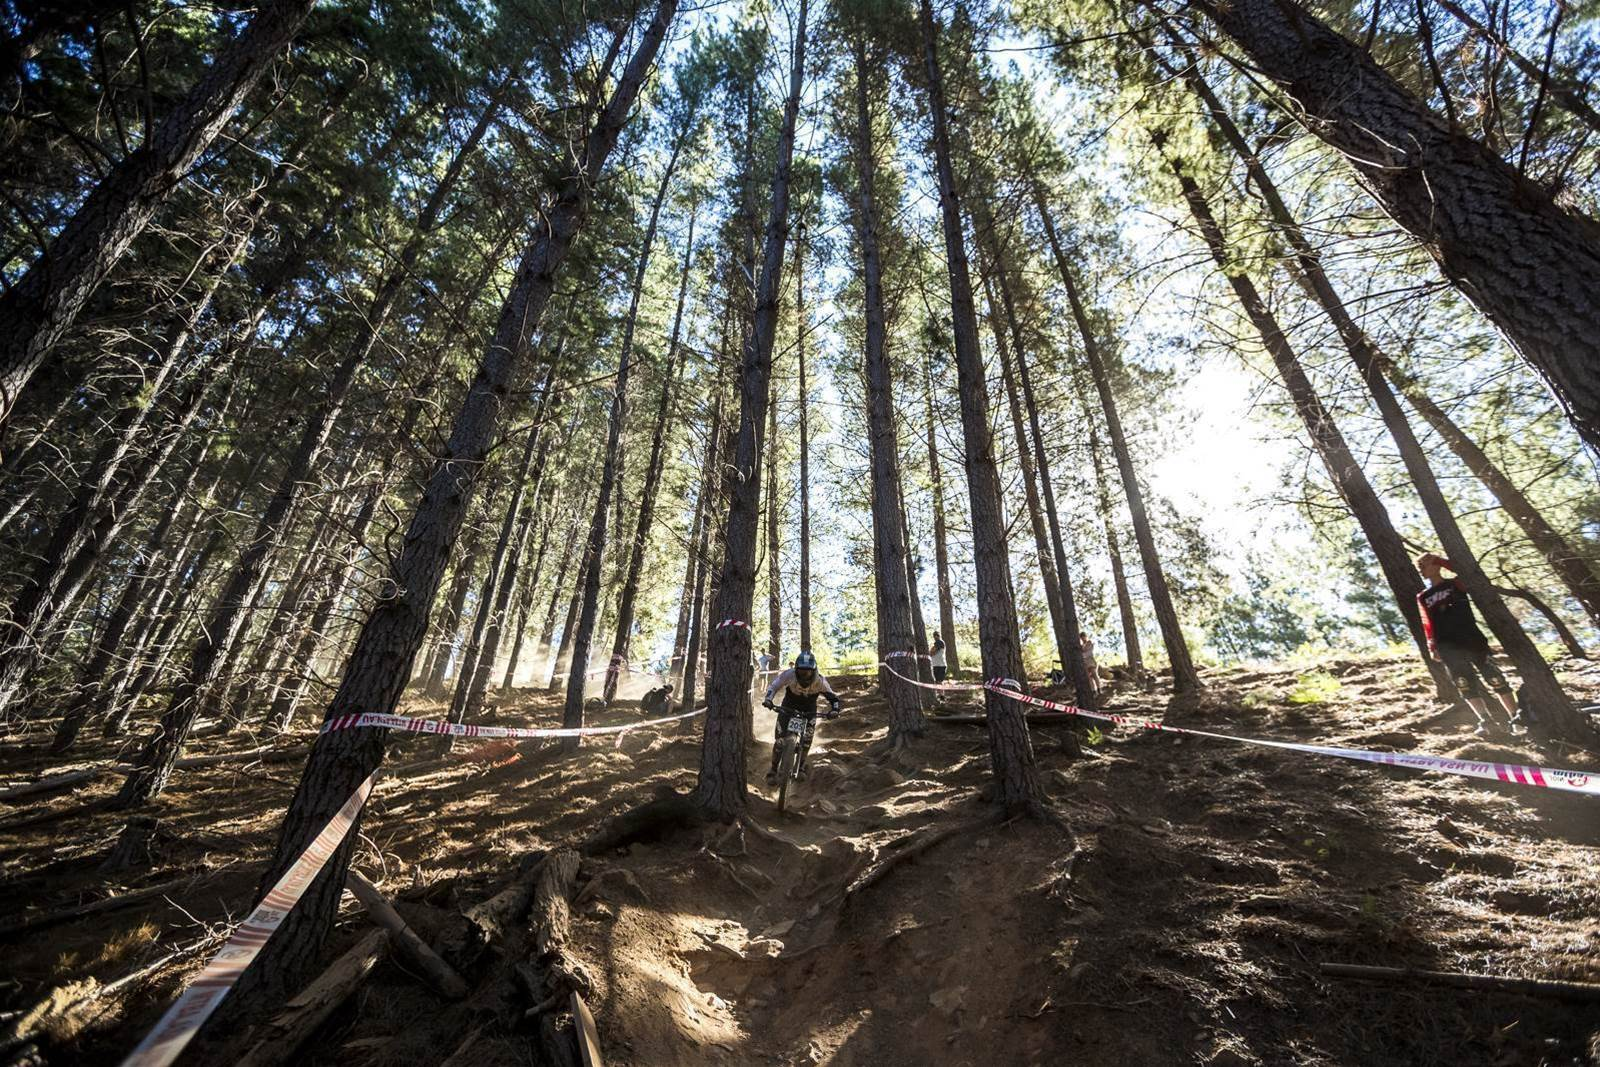 Dust trails on Dusty trails - Bright DH Champs day 2